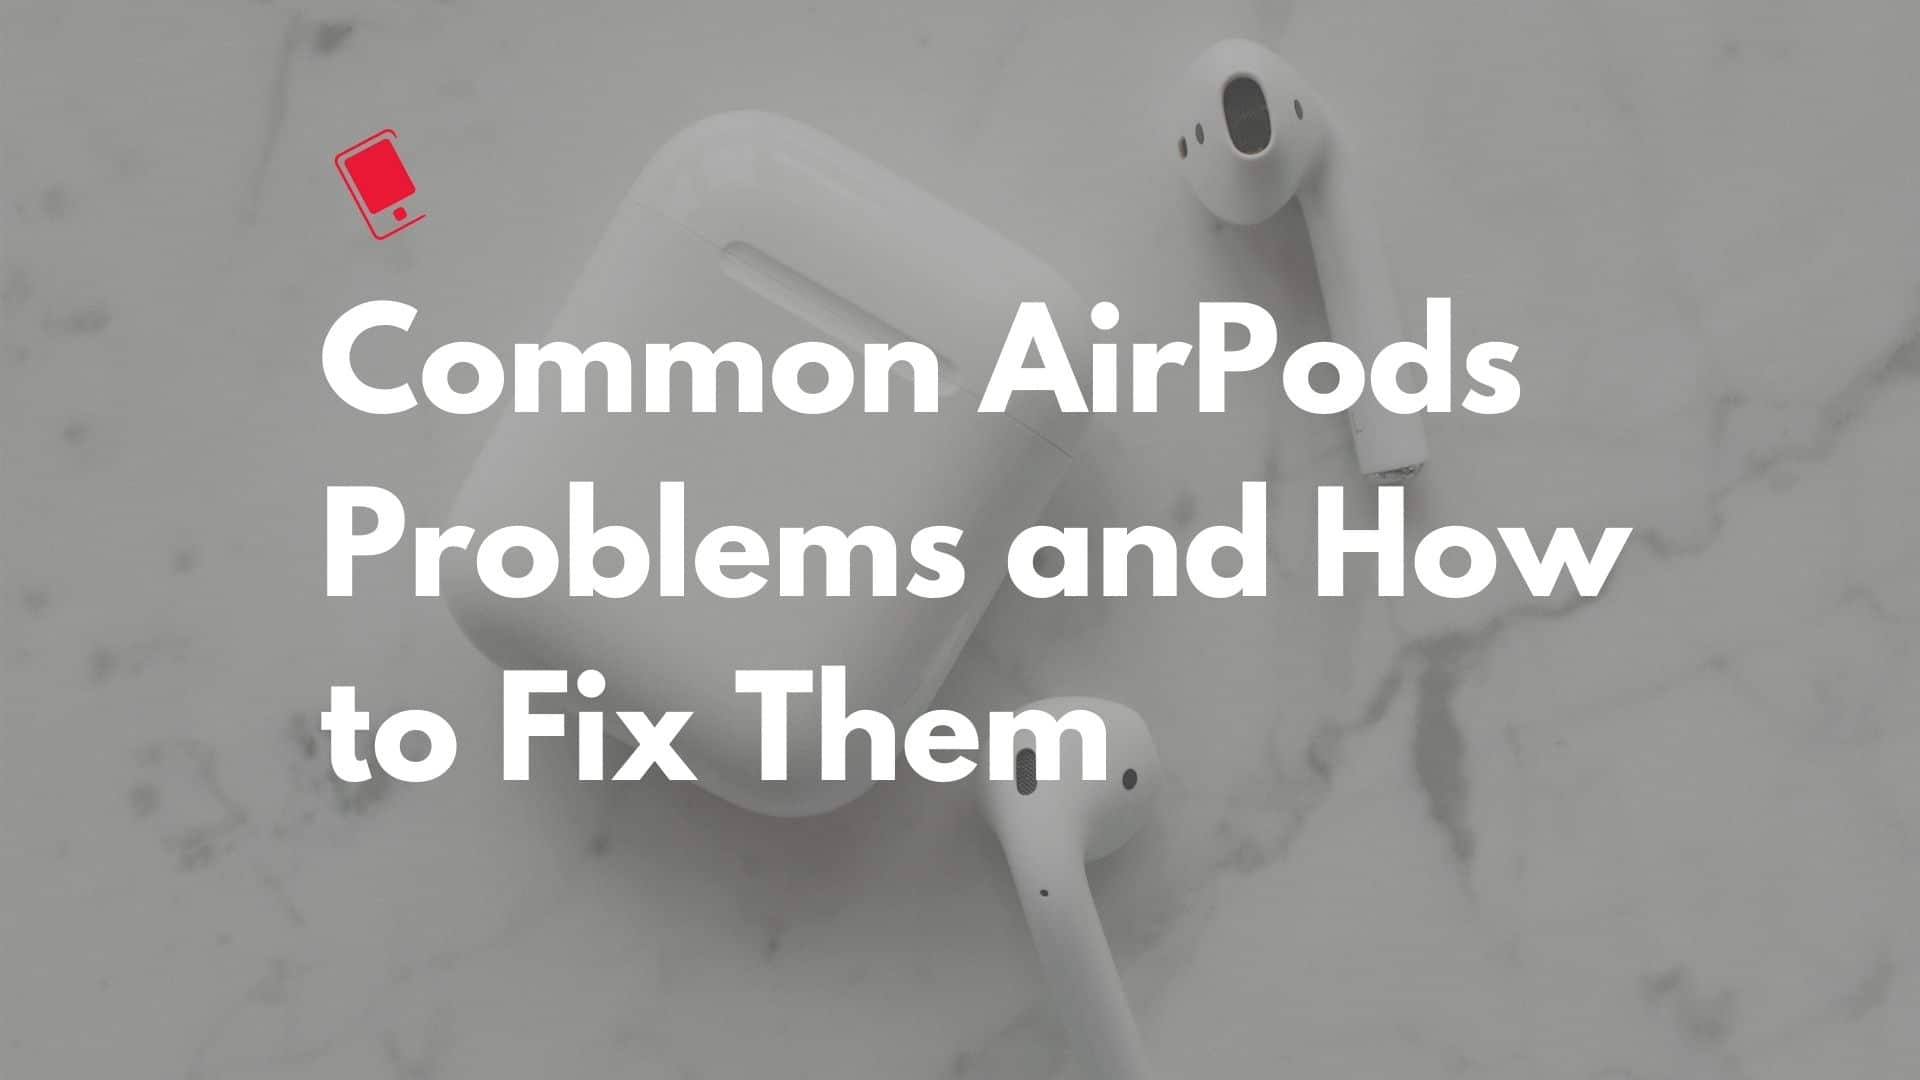 Common AirPods Issues and How to Fix Them